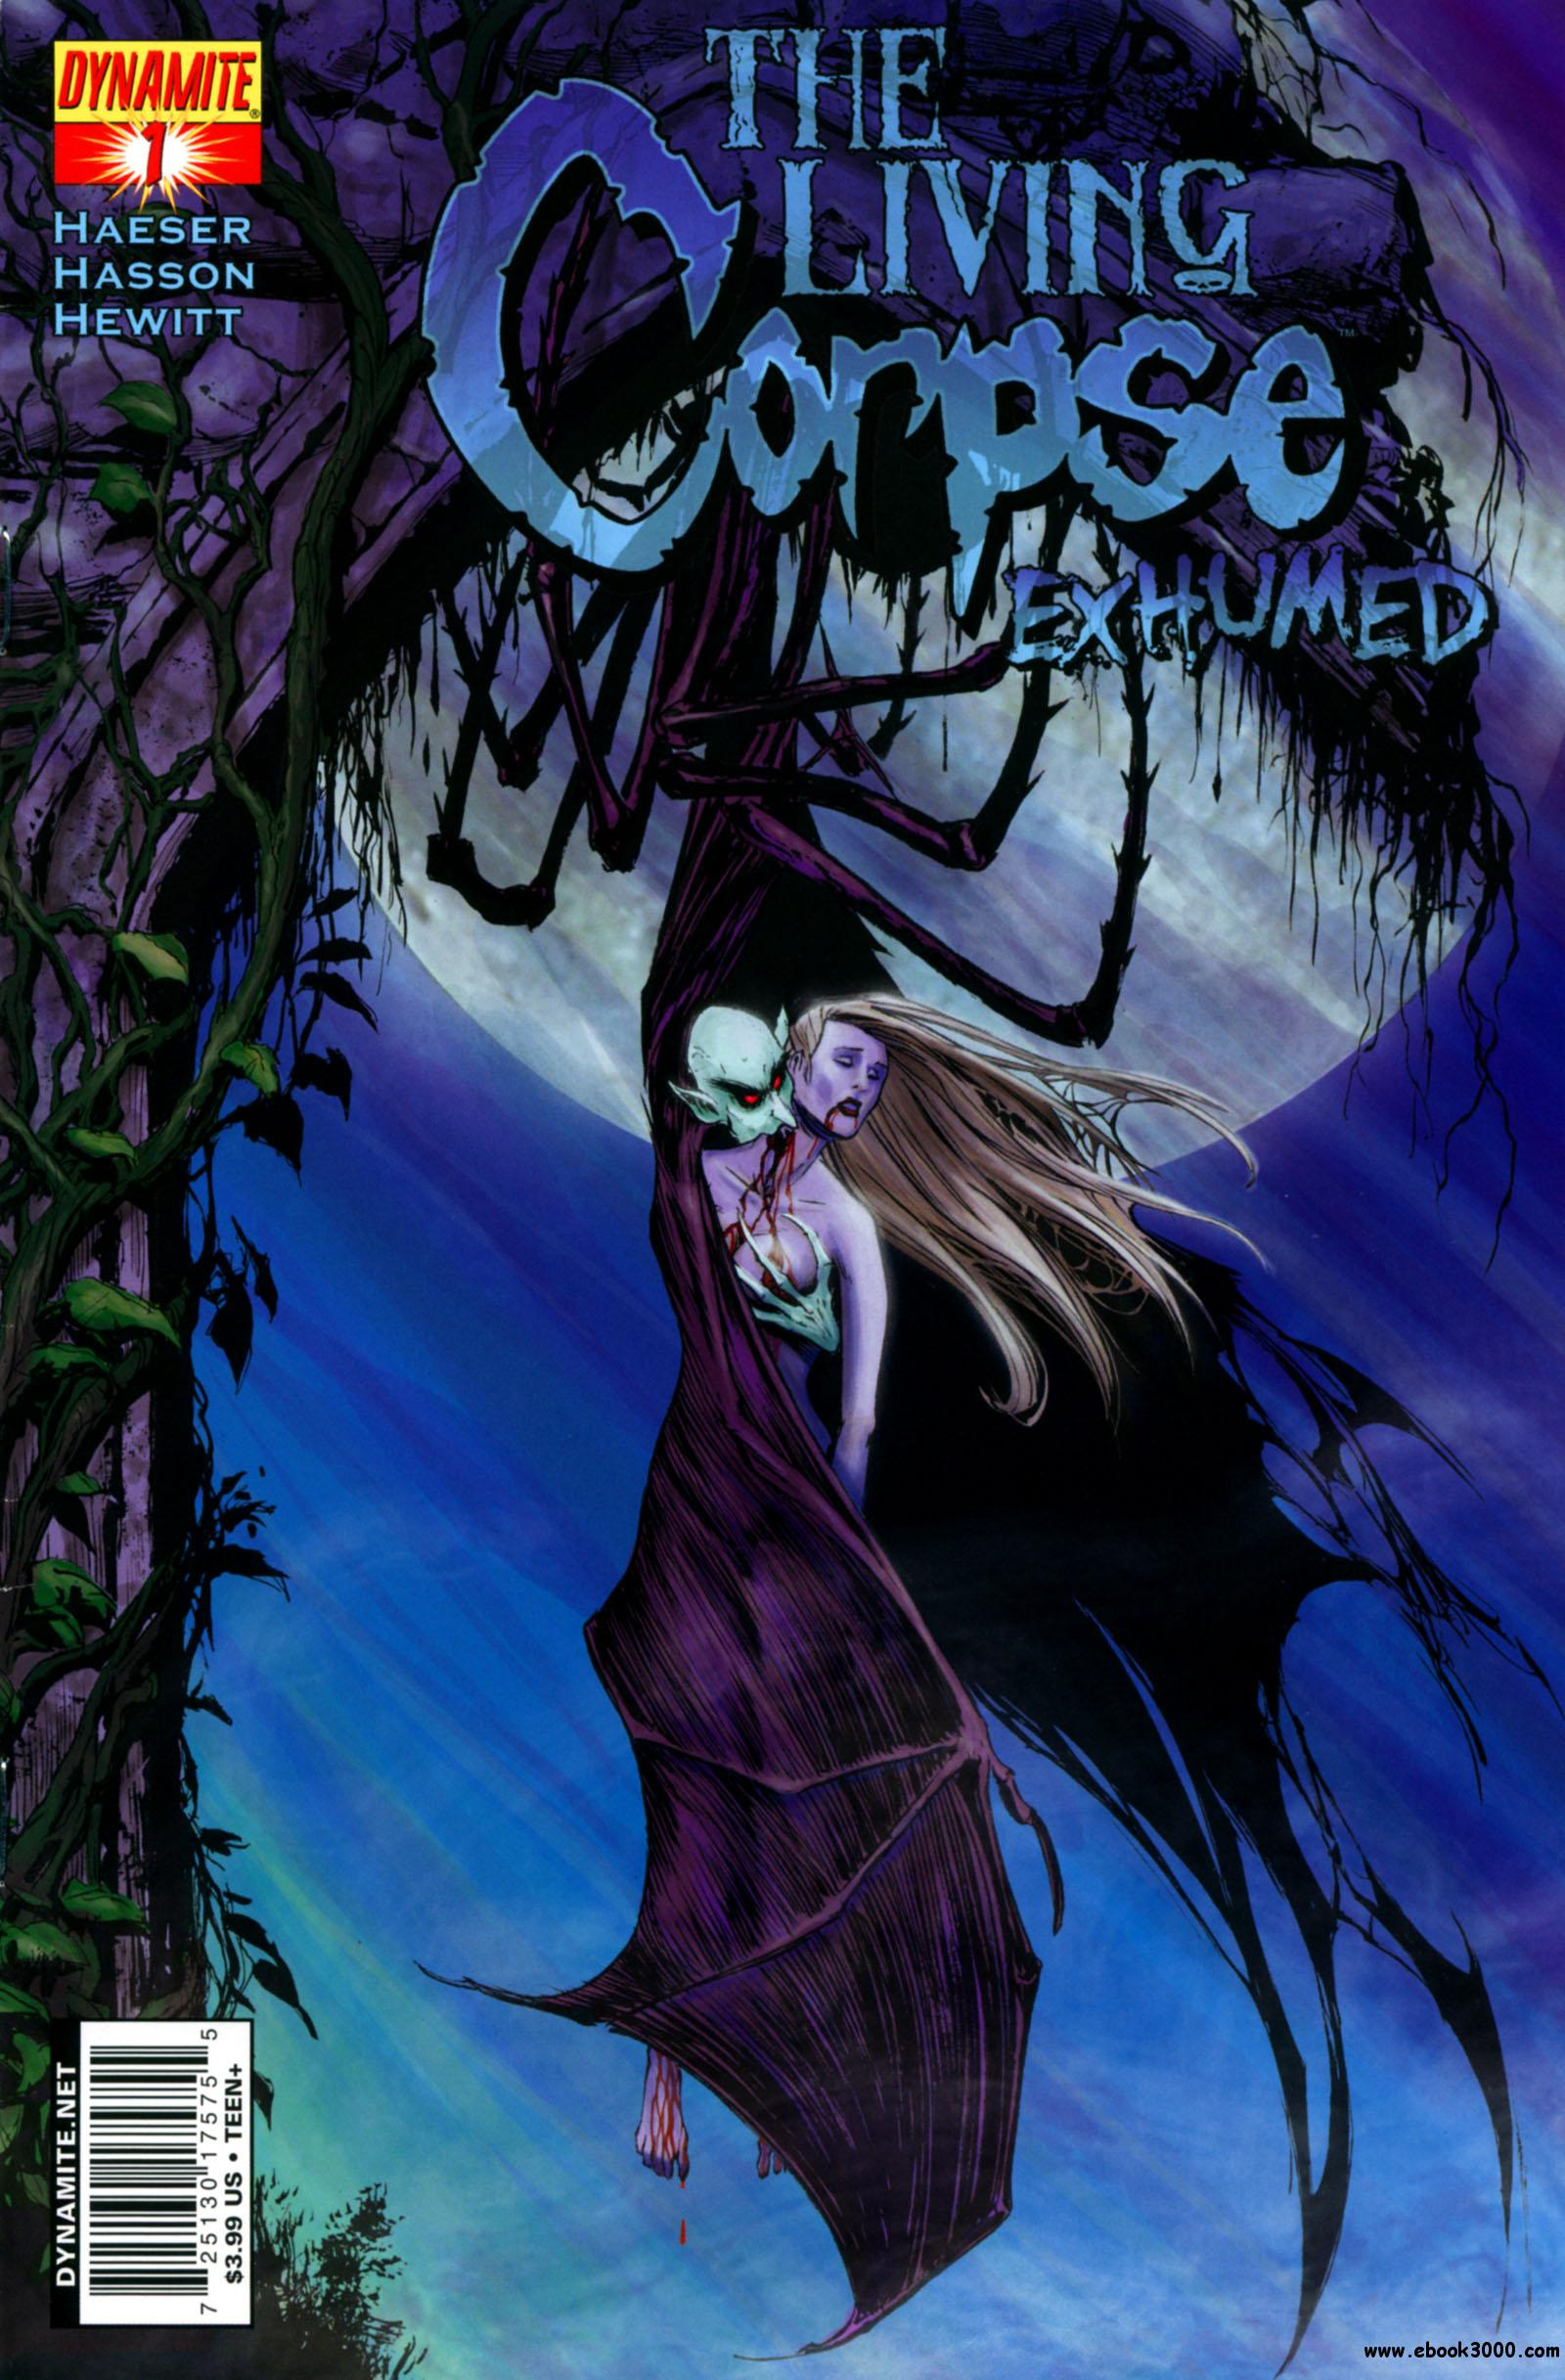 The Living Corpse - Exhumed #1 (2011) free download